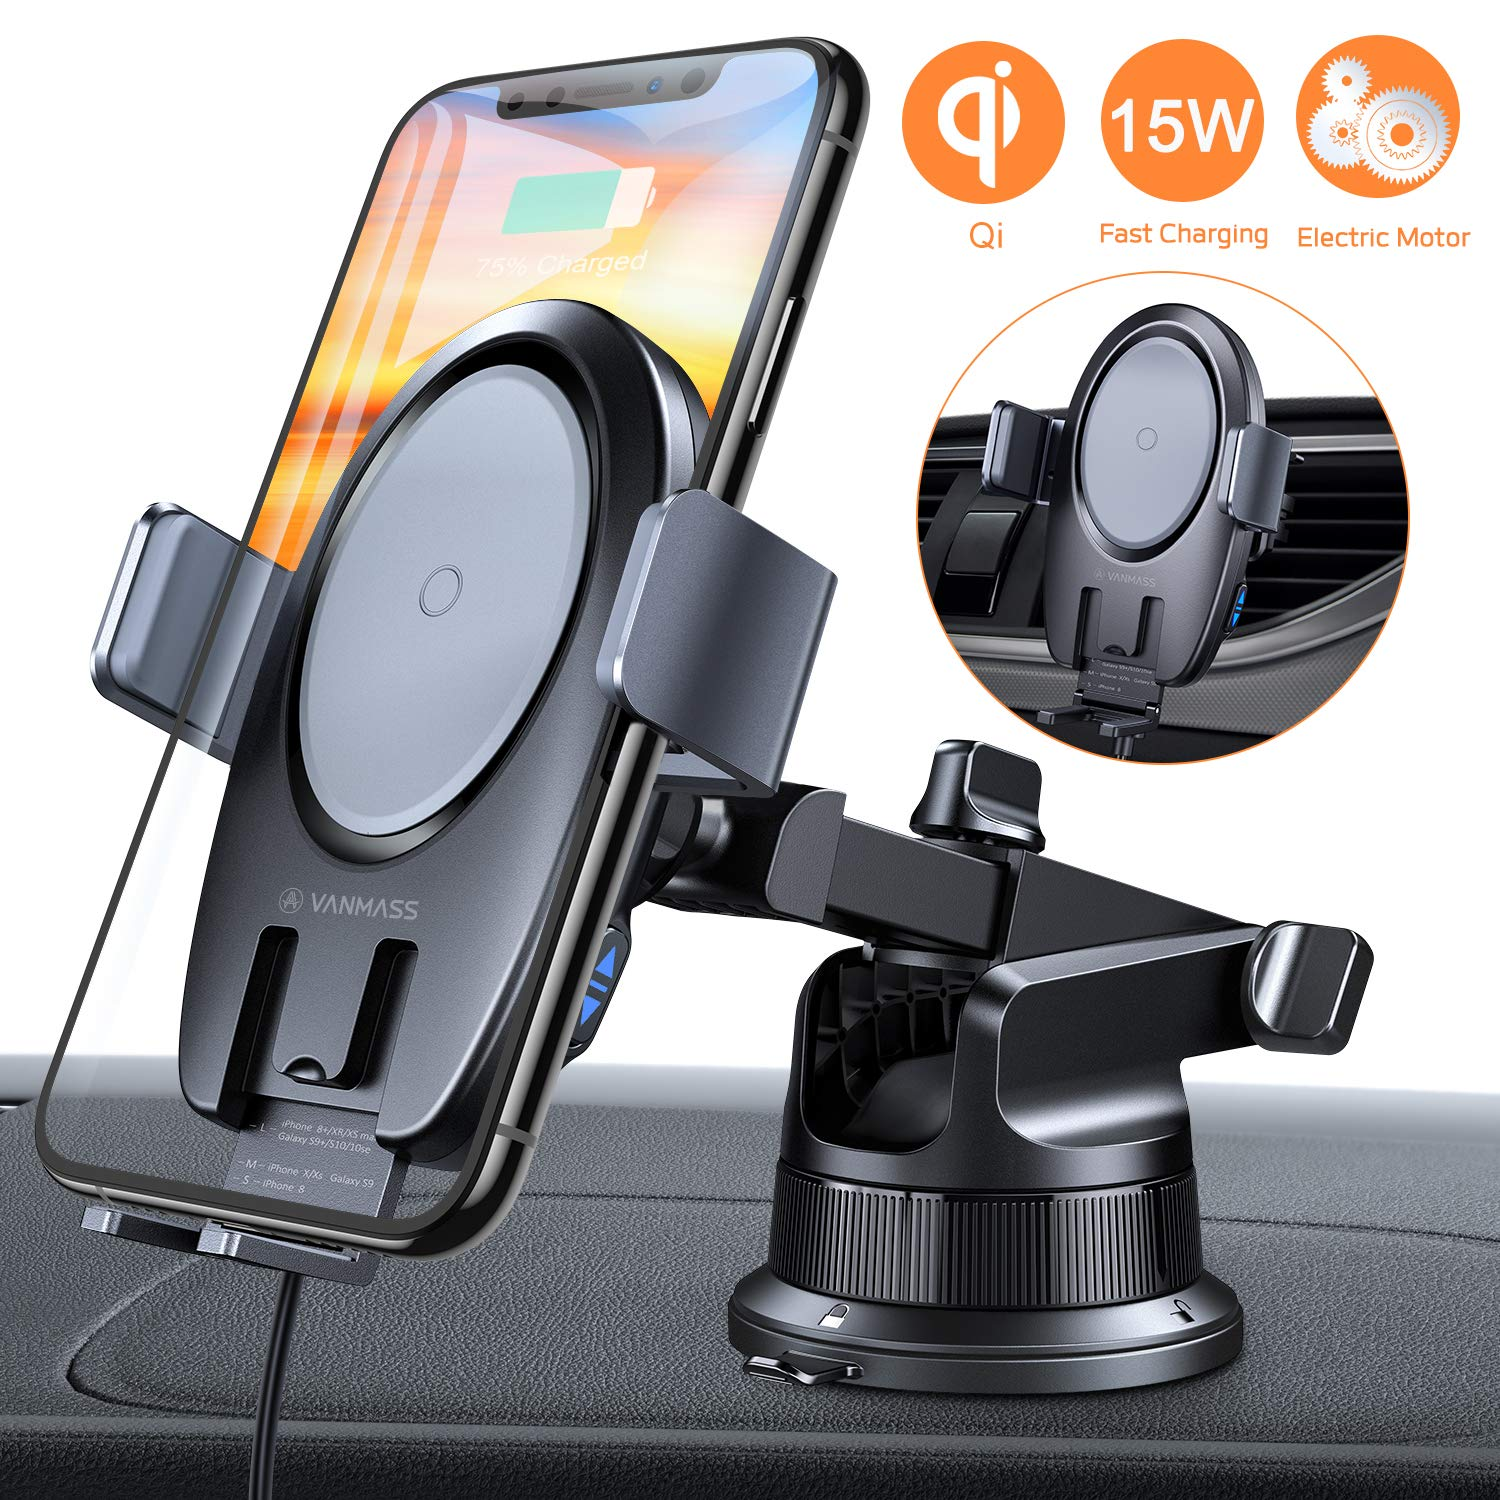 VANMASS 15W Wireless Car Charger Mount, Electric Automatic Clamping Dashboard Air Vent Windshield Phone Holder,Qi Fast Charging Compatible with iPhone 11 Pro Max Xs X 8,Samsung S10 S9 Note10, LG V30+ by VANMASS